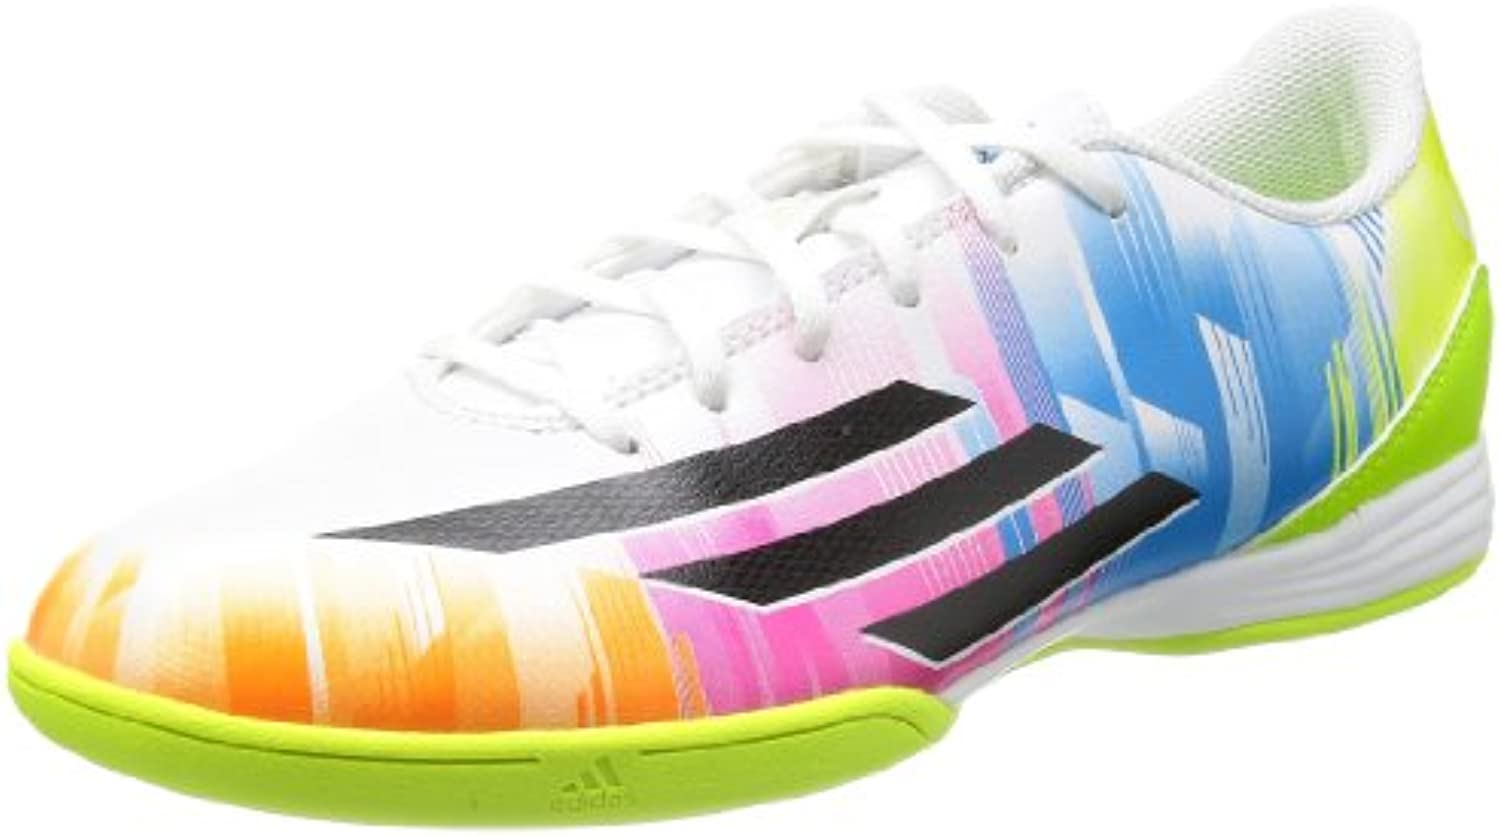 Adidas - F10 IN Messi, - runwht/black, 9.5